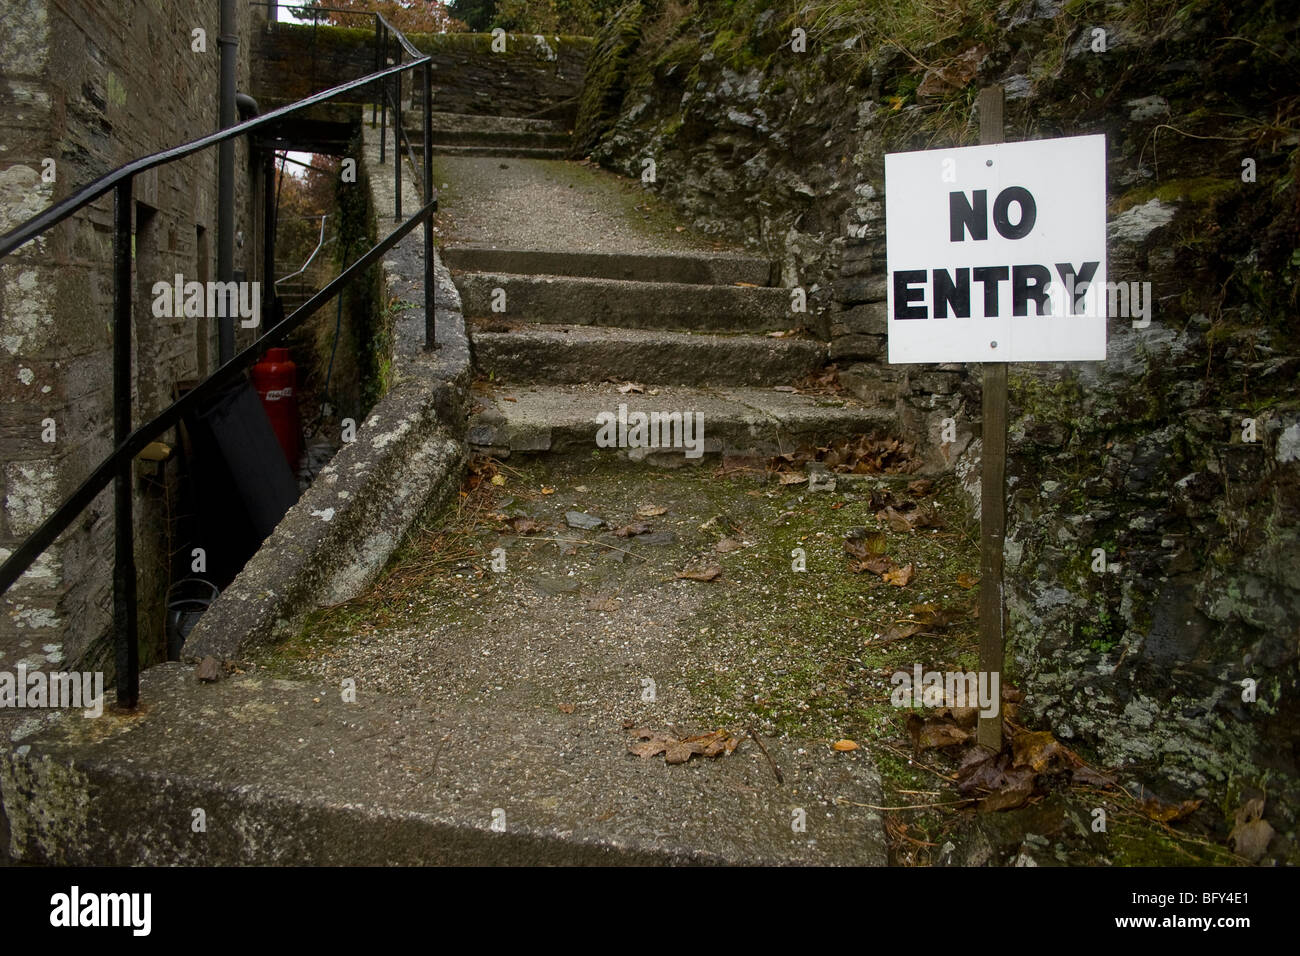 'No Entry' to a path sign. Stock Photo